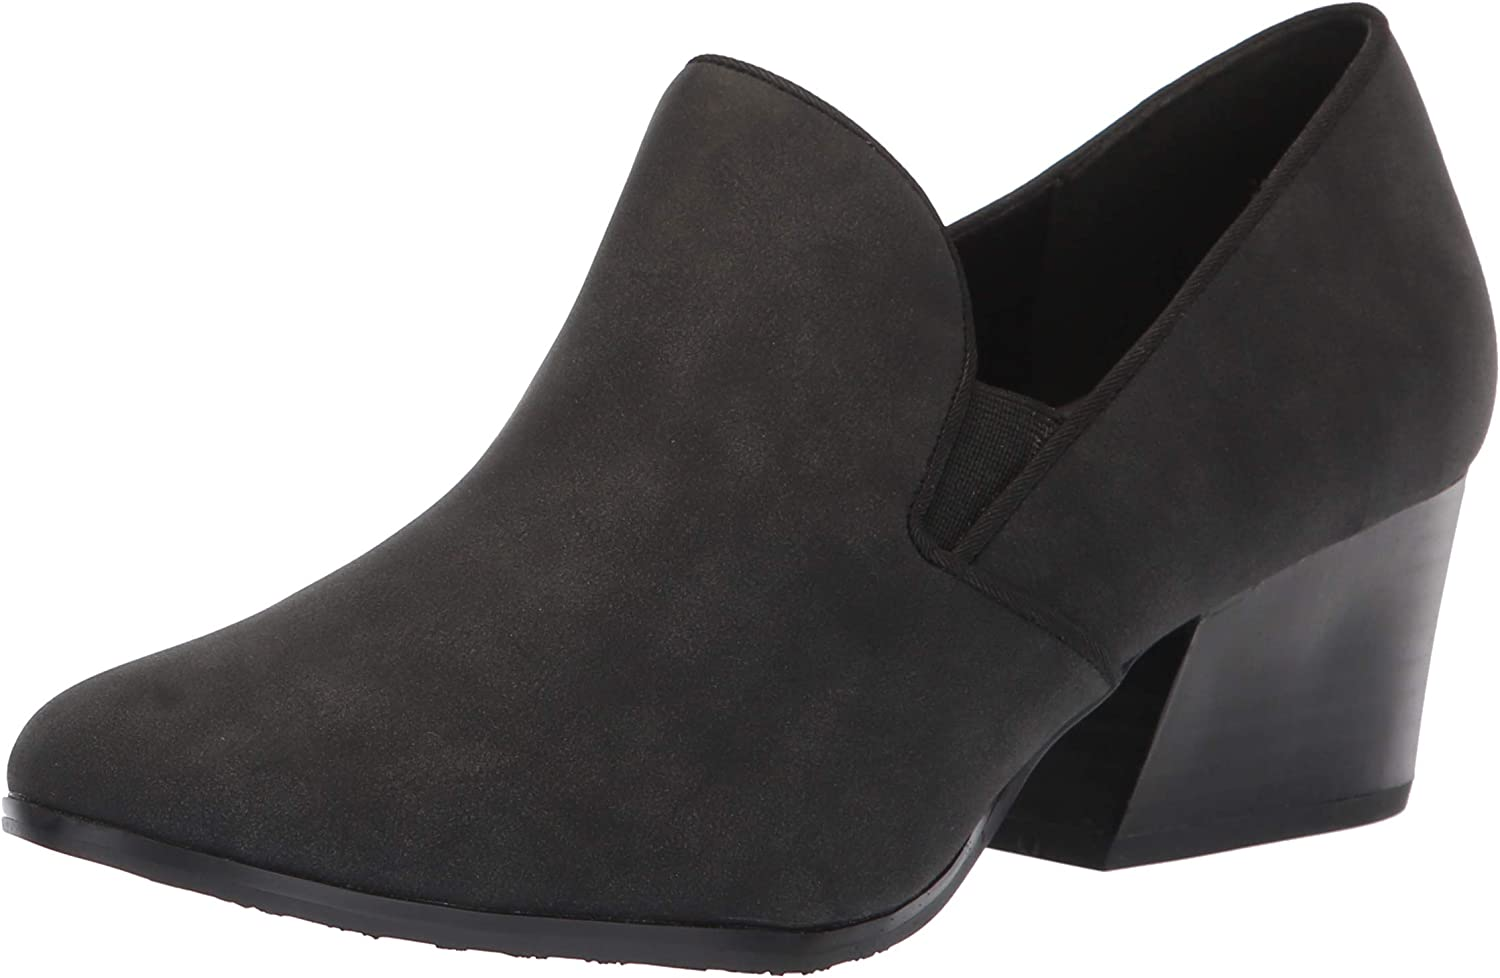 Hush Puppies Soft Style - Graze Damen